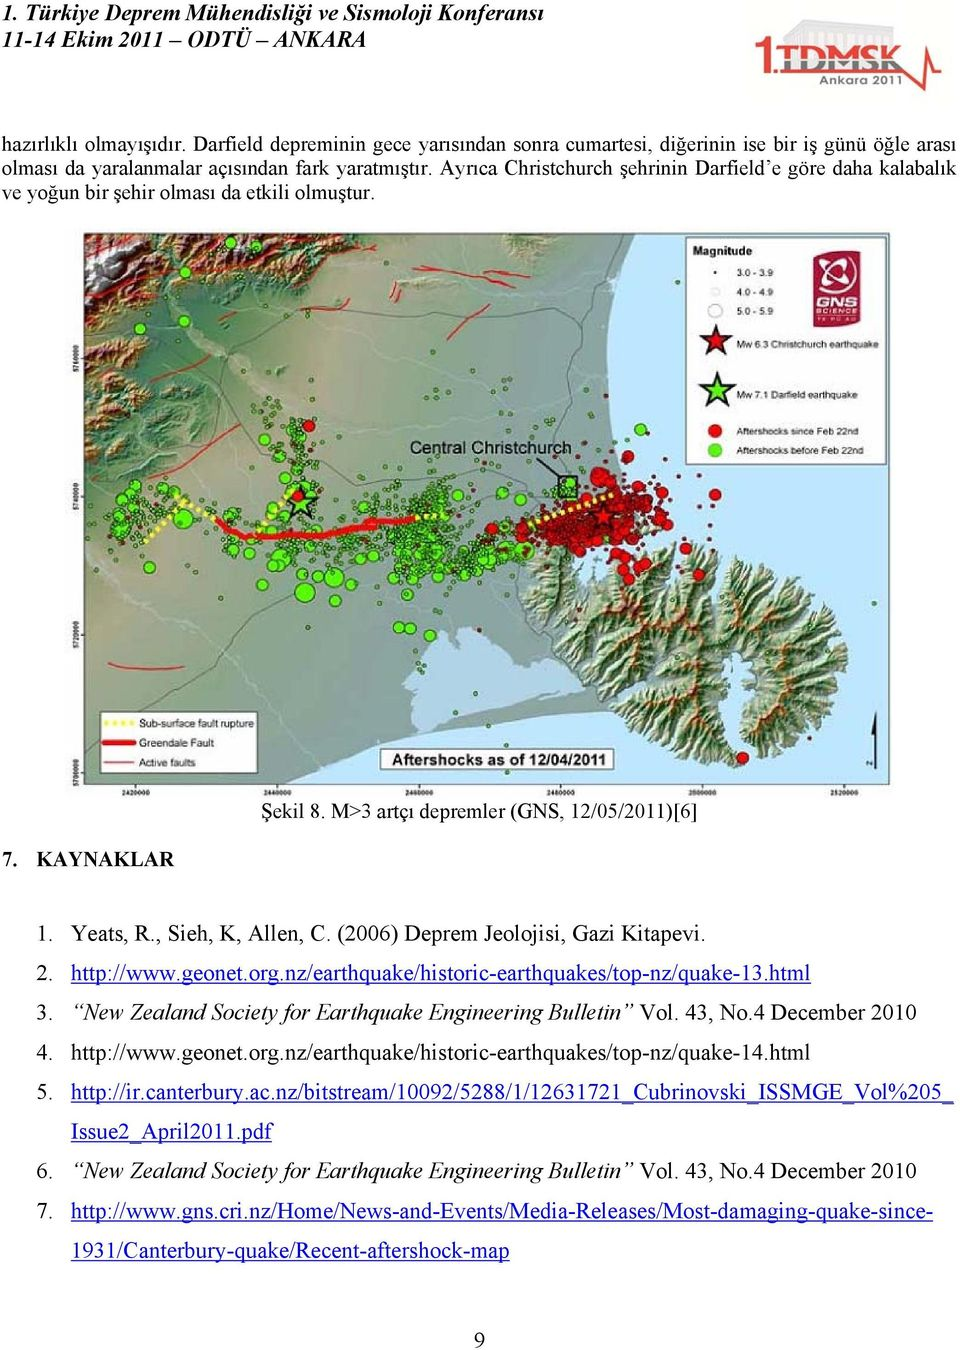 , Sieh, K, Allen, C. (2006) Deprem Jeolojisi, Gazi Kitapevi. 2. http://www.geonet.org.nz/earthquake/historic-earthquakes/top-nz/quake-13.html 3.